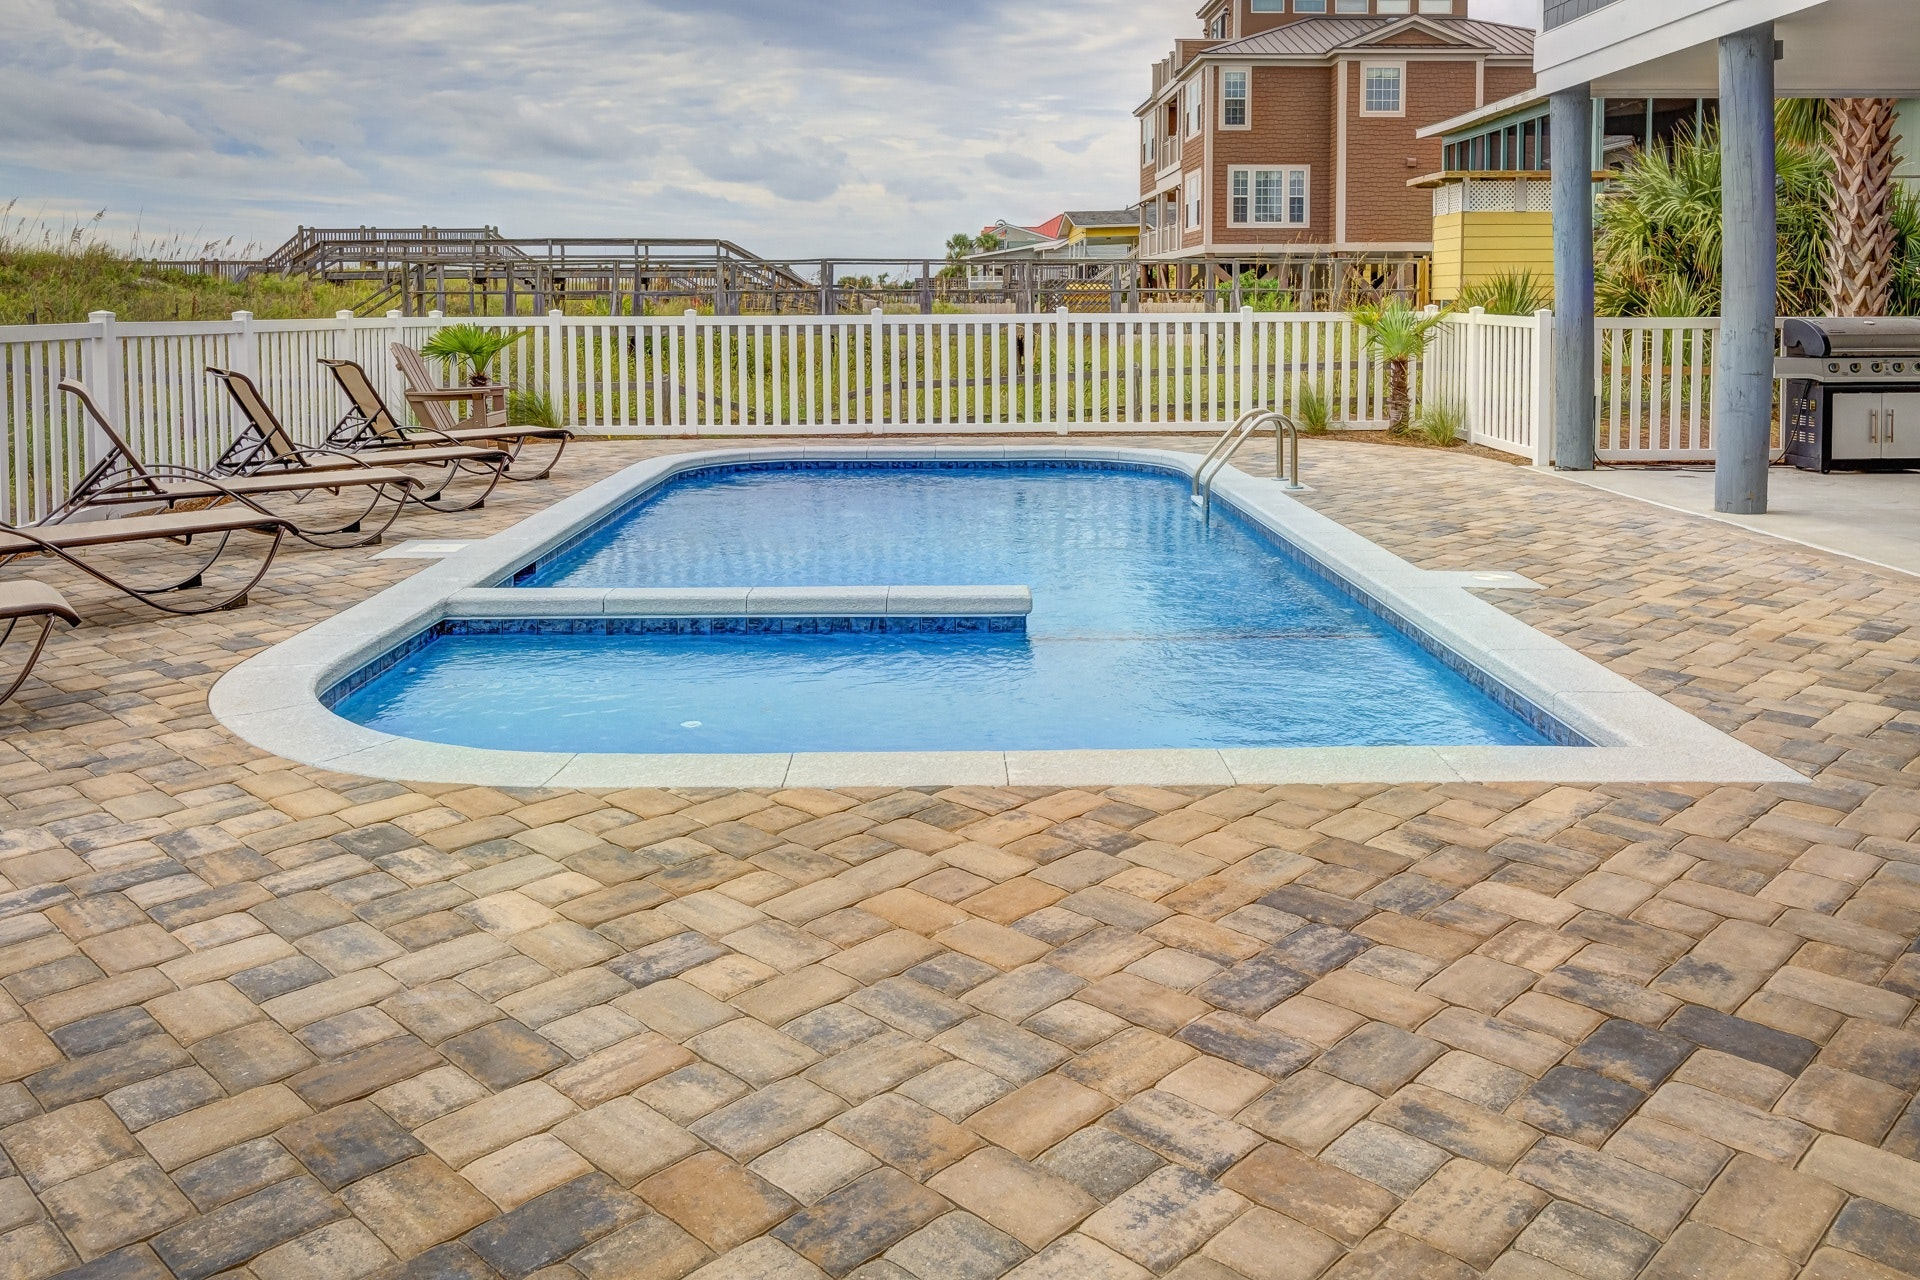 Maryland Pool Fence Laws